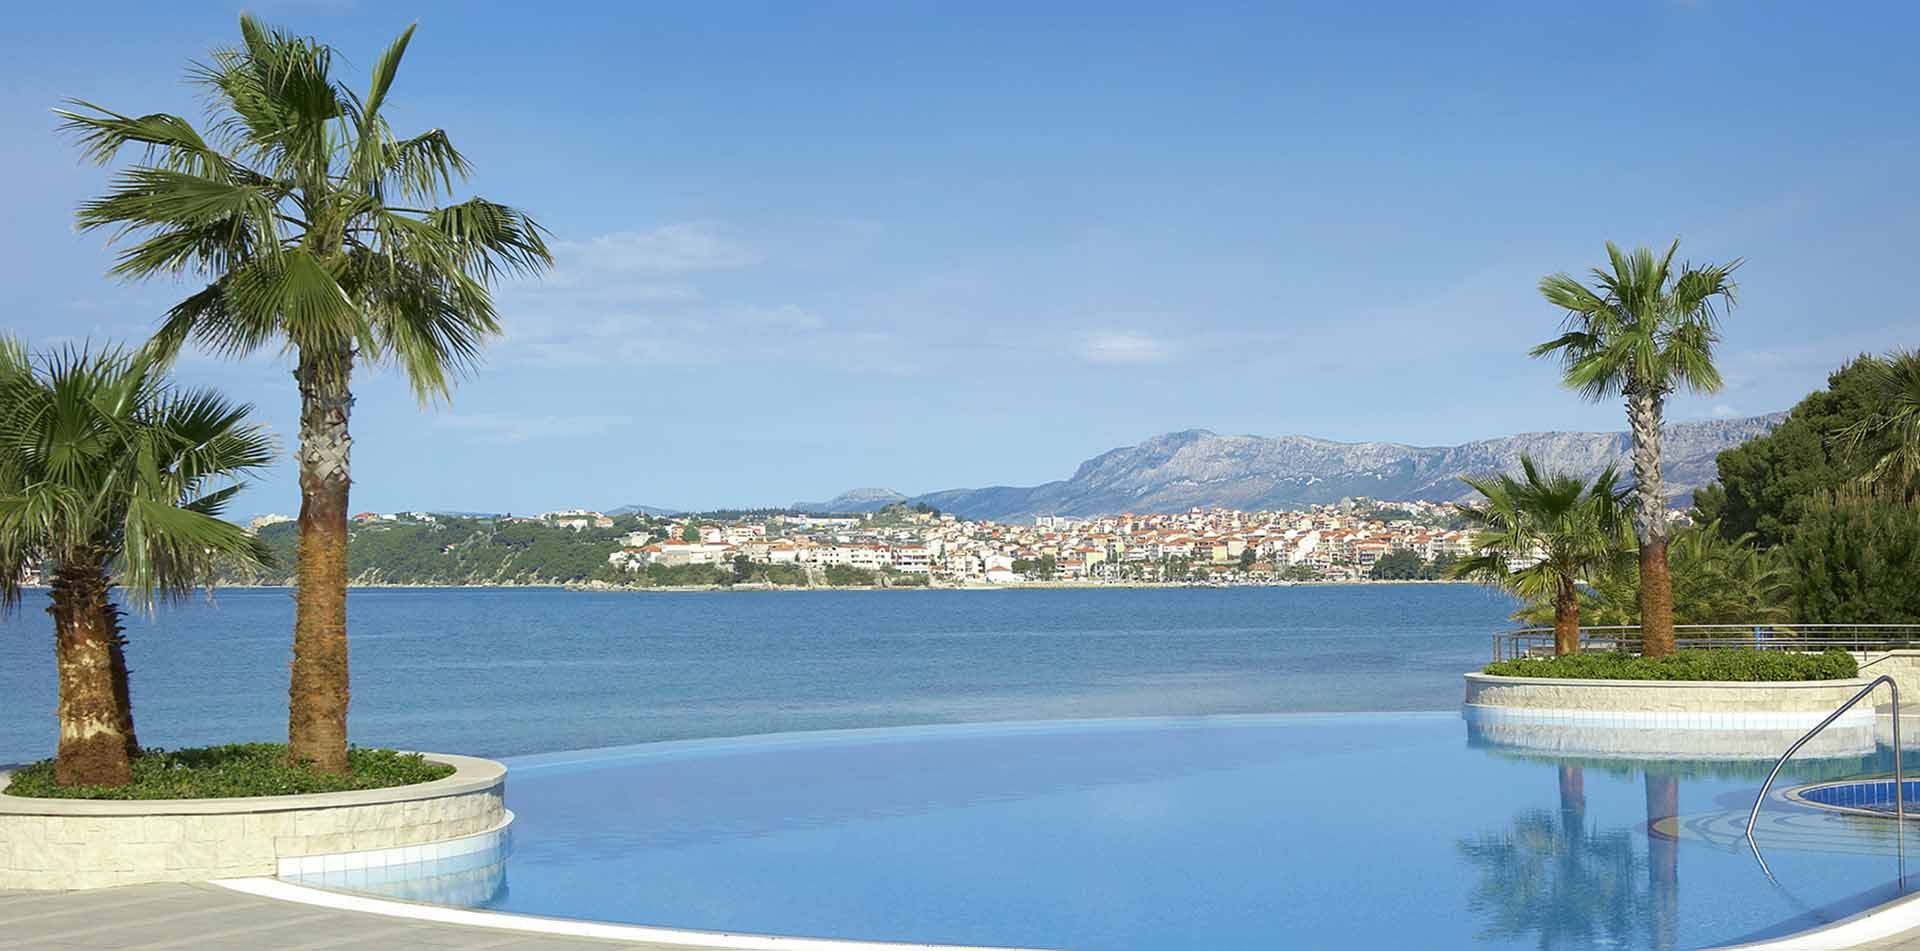 Europe Croatia Le Meridien Lav Split hotel pool swim beautiful city view blue Dalmatian Coast - luxury vacation destinations